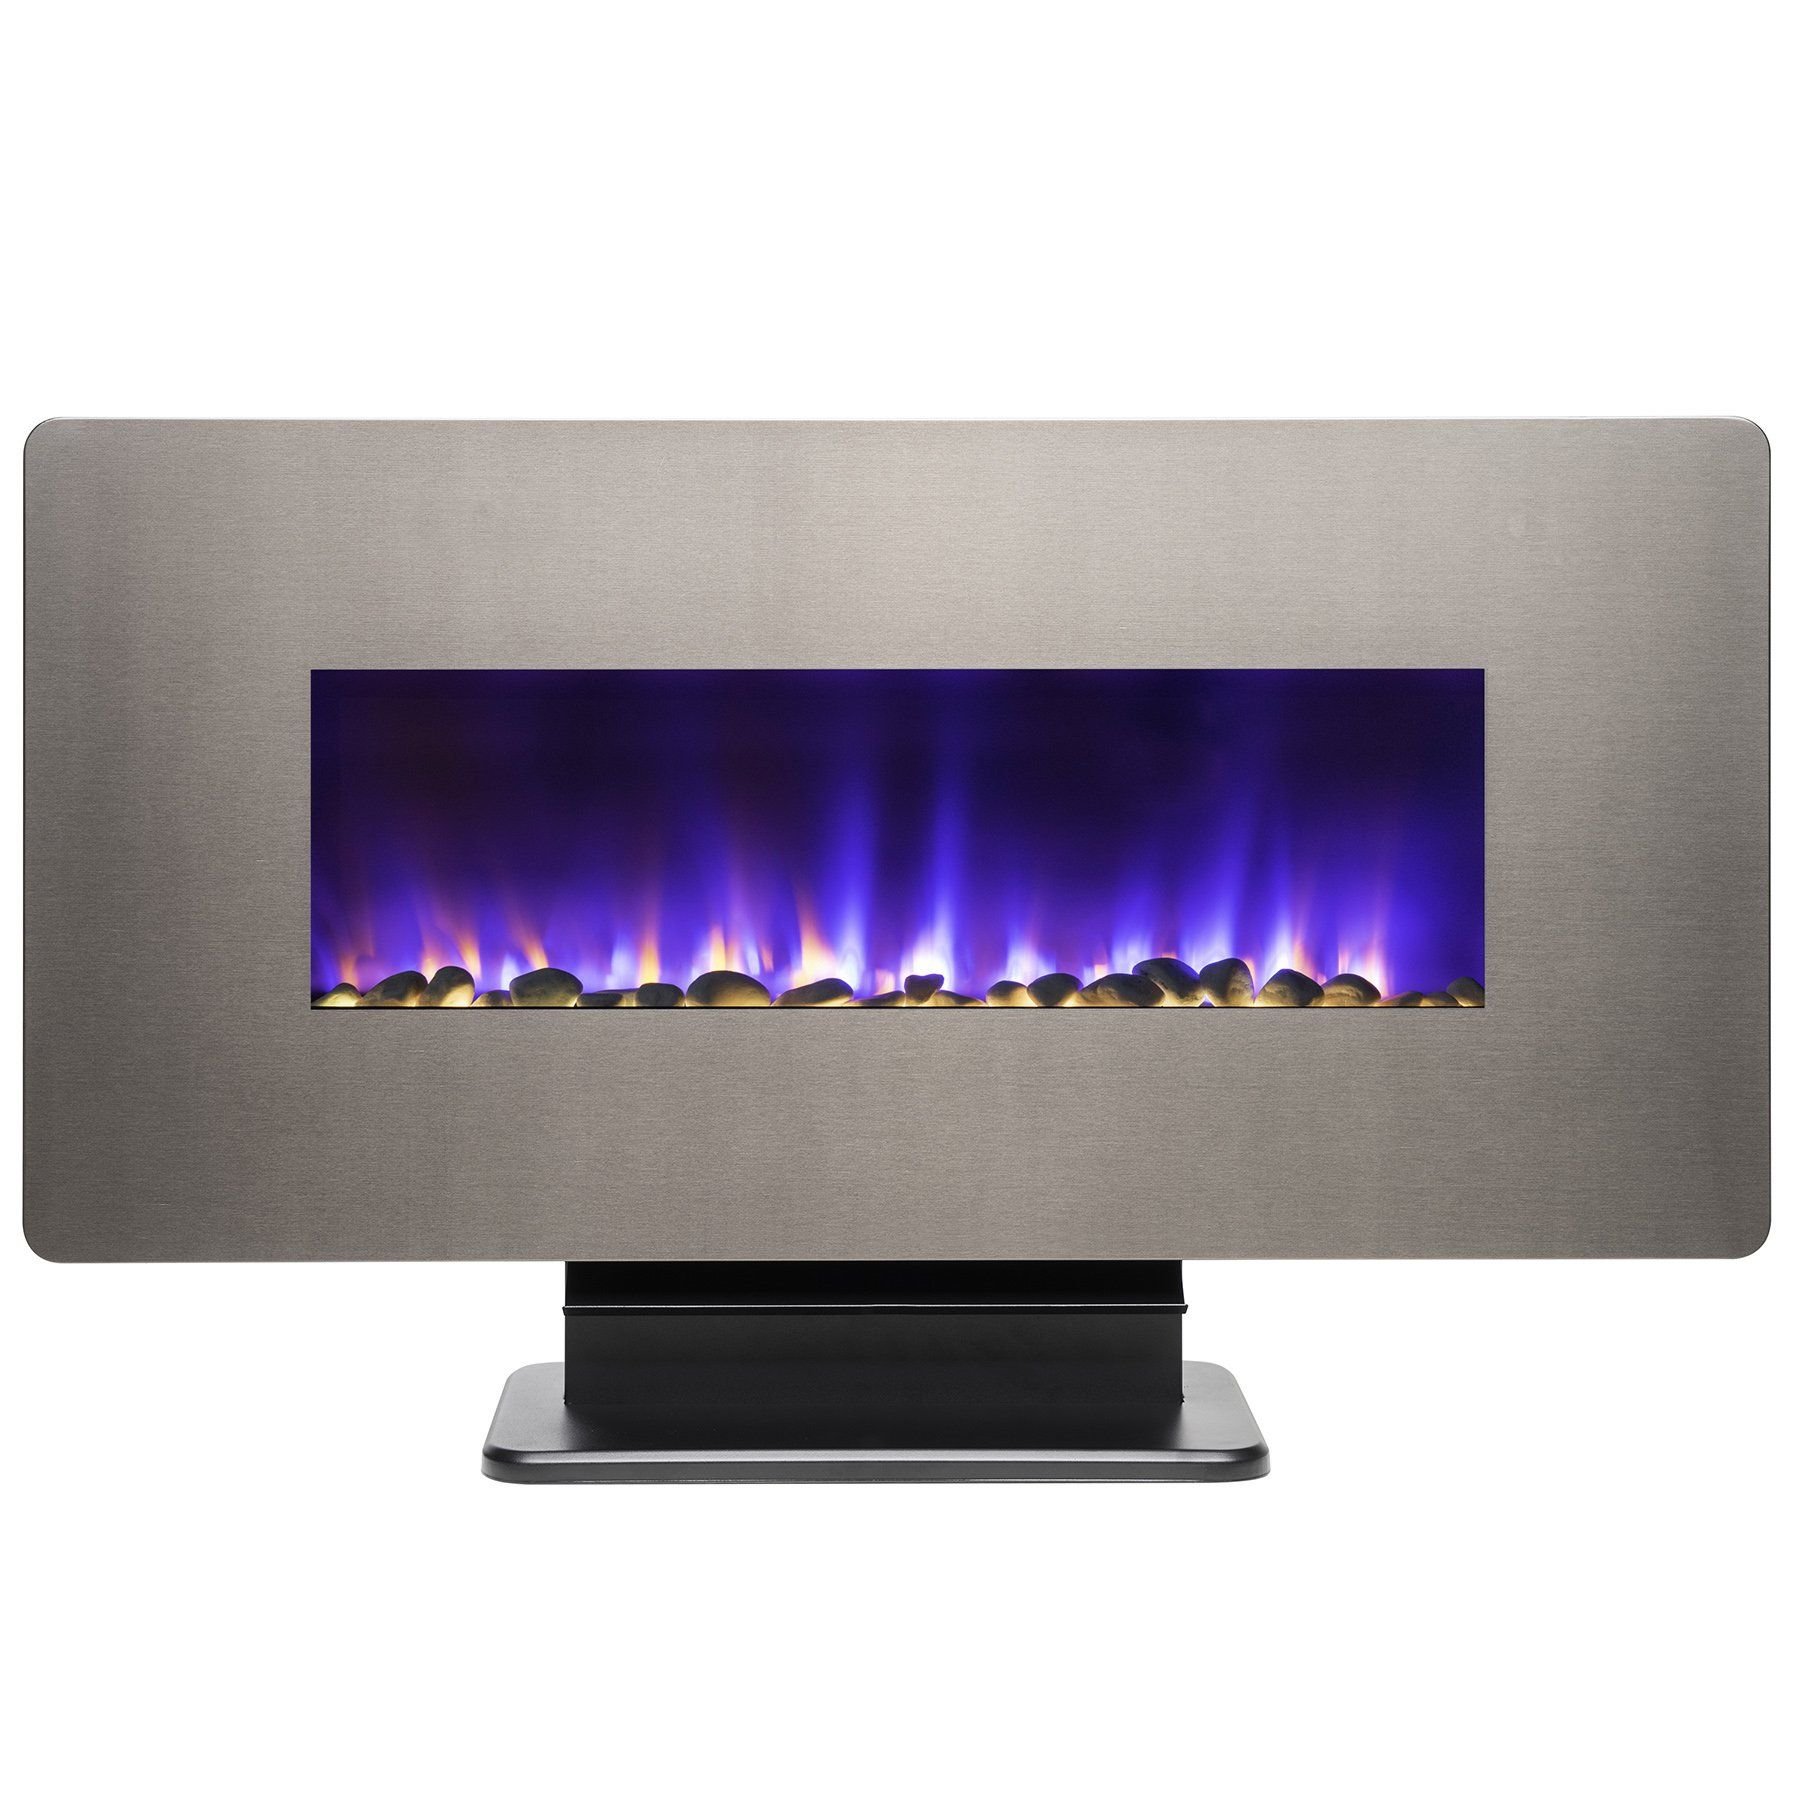 36inch Electric Wall Mount Fireplace Heater W Remote Control And Pebble Read More Reviews Wall Mount Electric Fireplace Wall Mount Fireplace Fireplace Heater